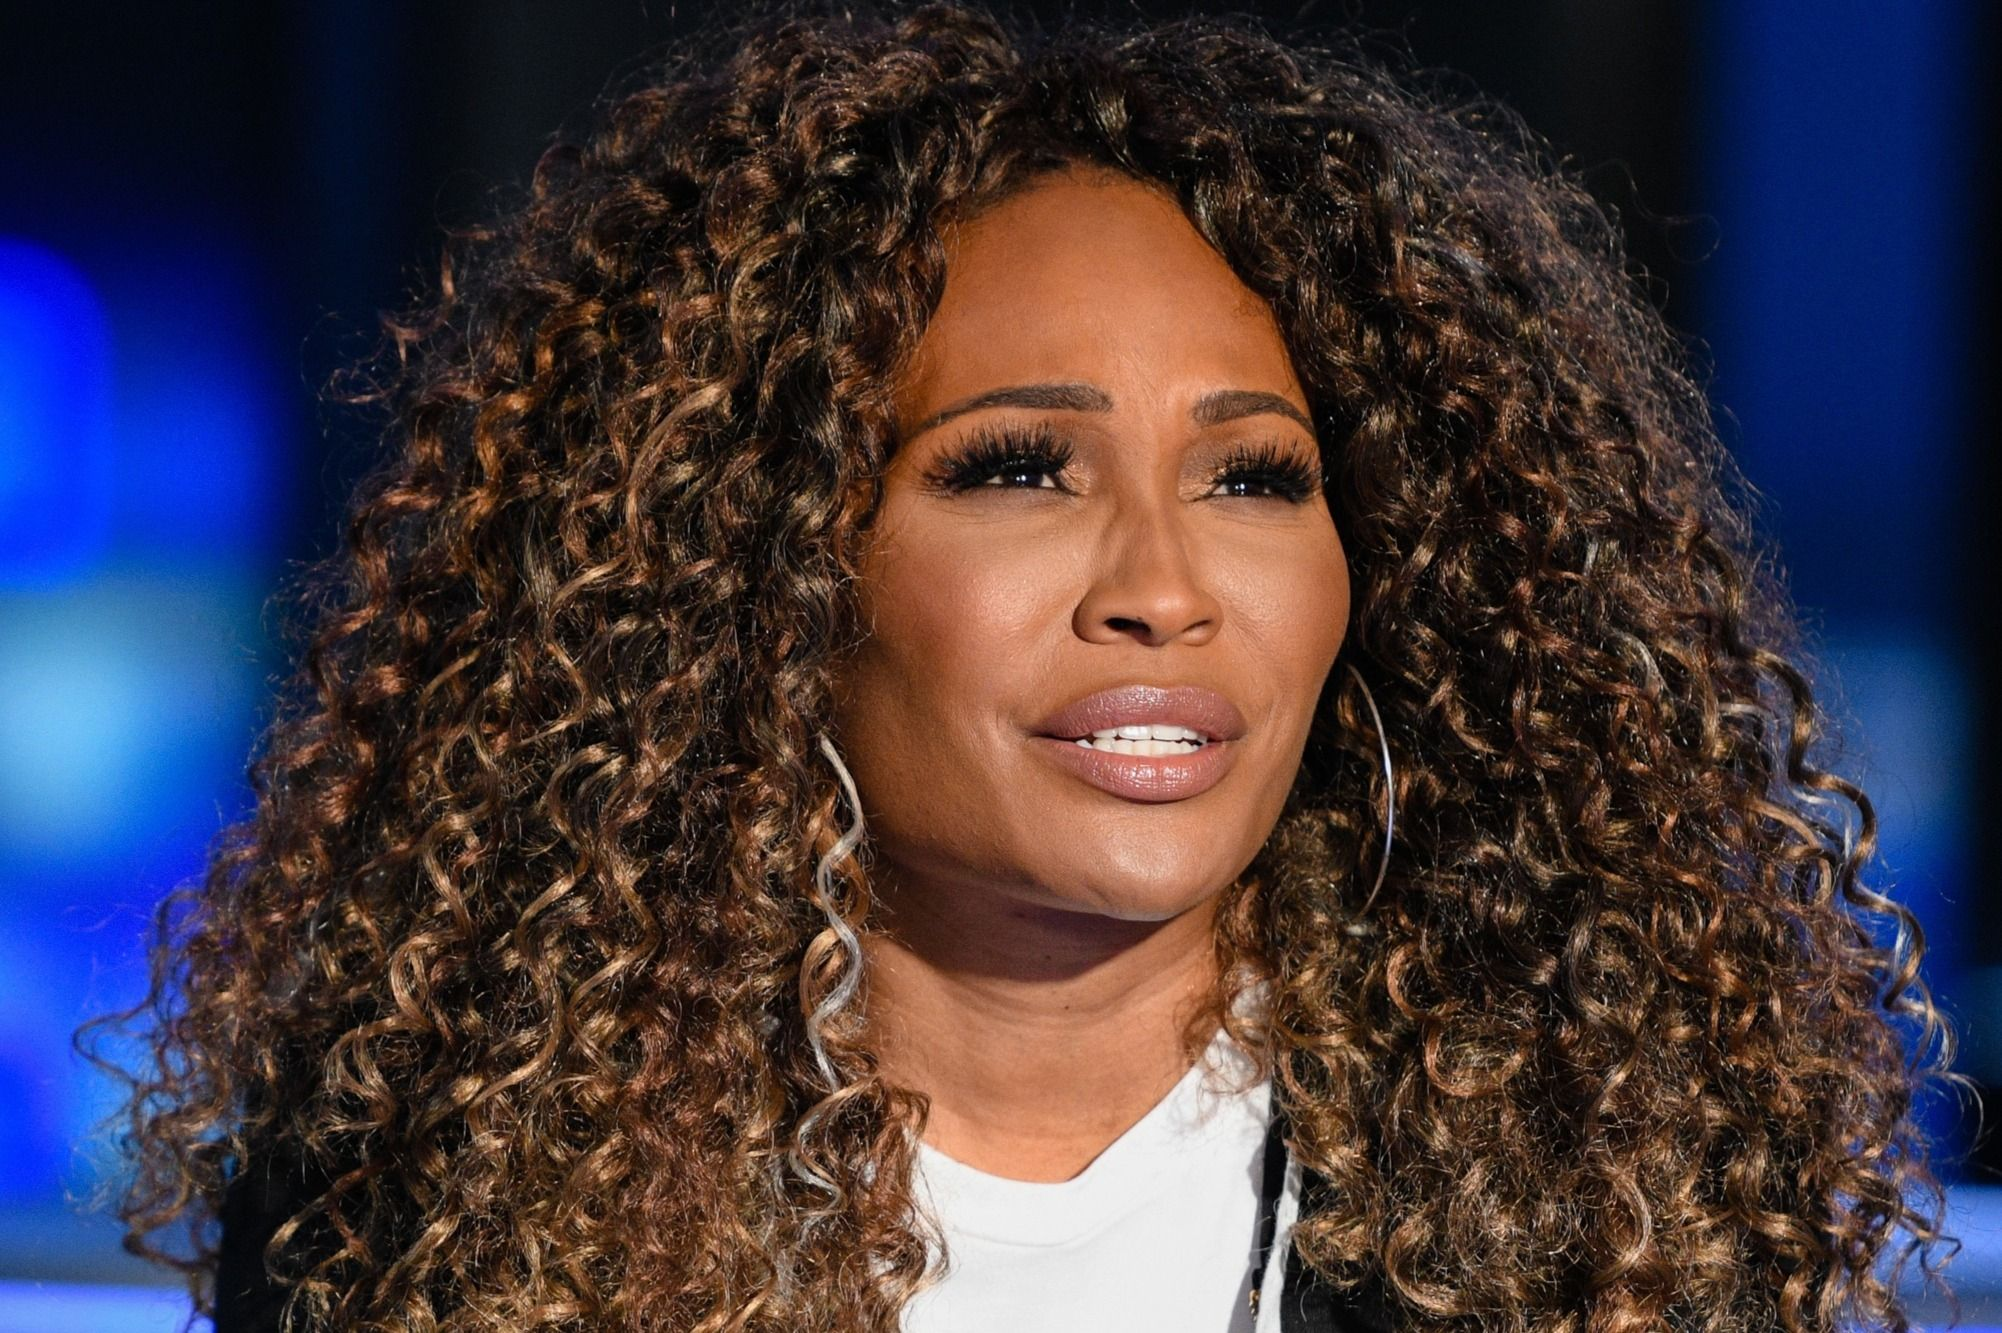 Cynthia Bailey Shares New Photos That Have Fans Praising This Special Look